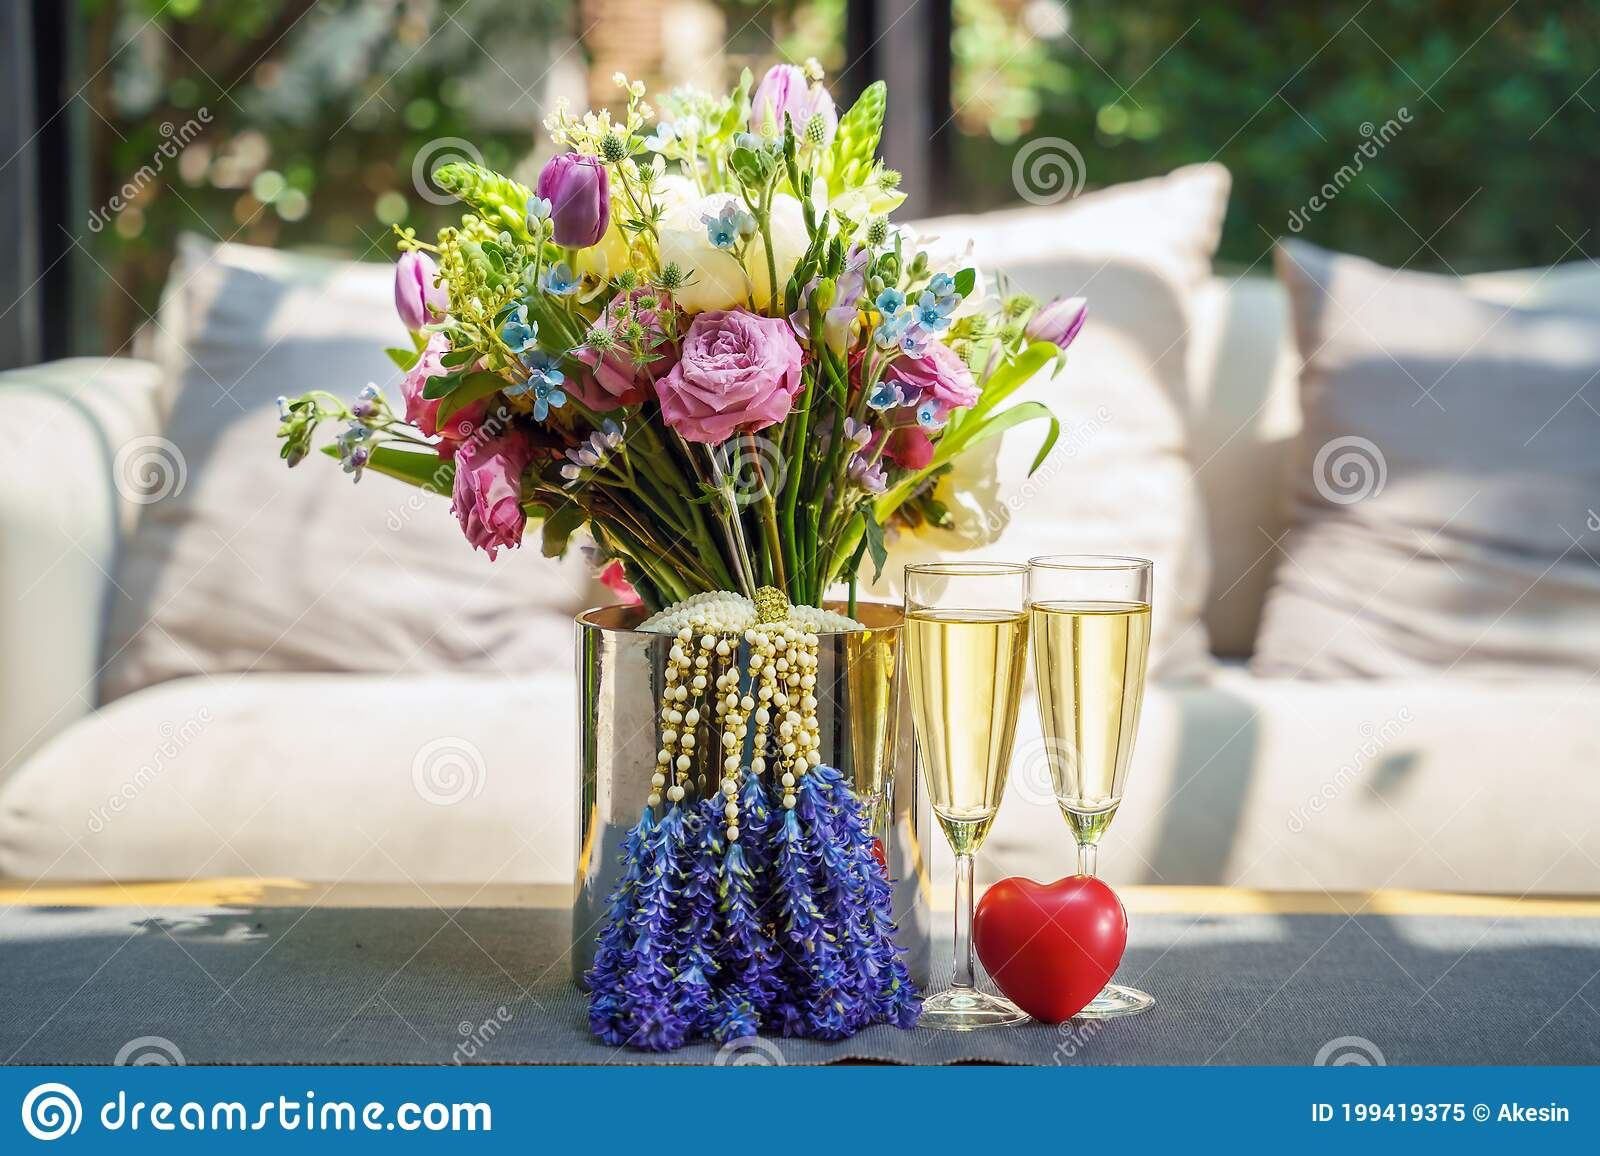 Concept Of Valentines Day Or Wedding Anniversary Celebration Stock Image Image Of Flower Bridal 199419375